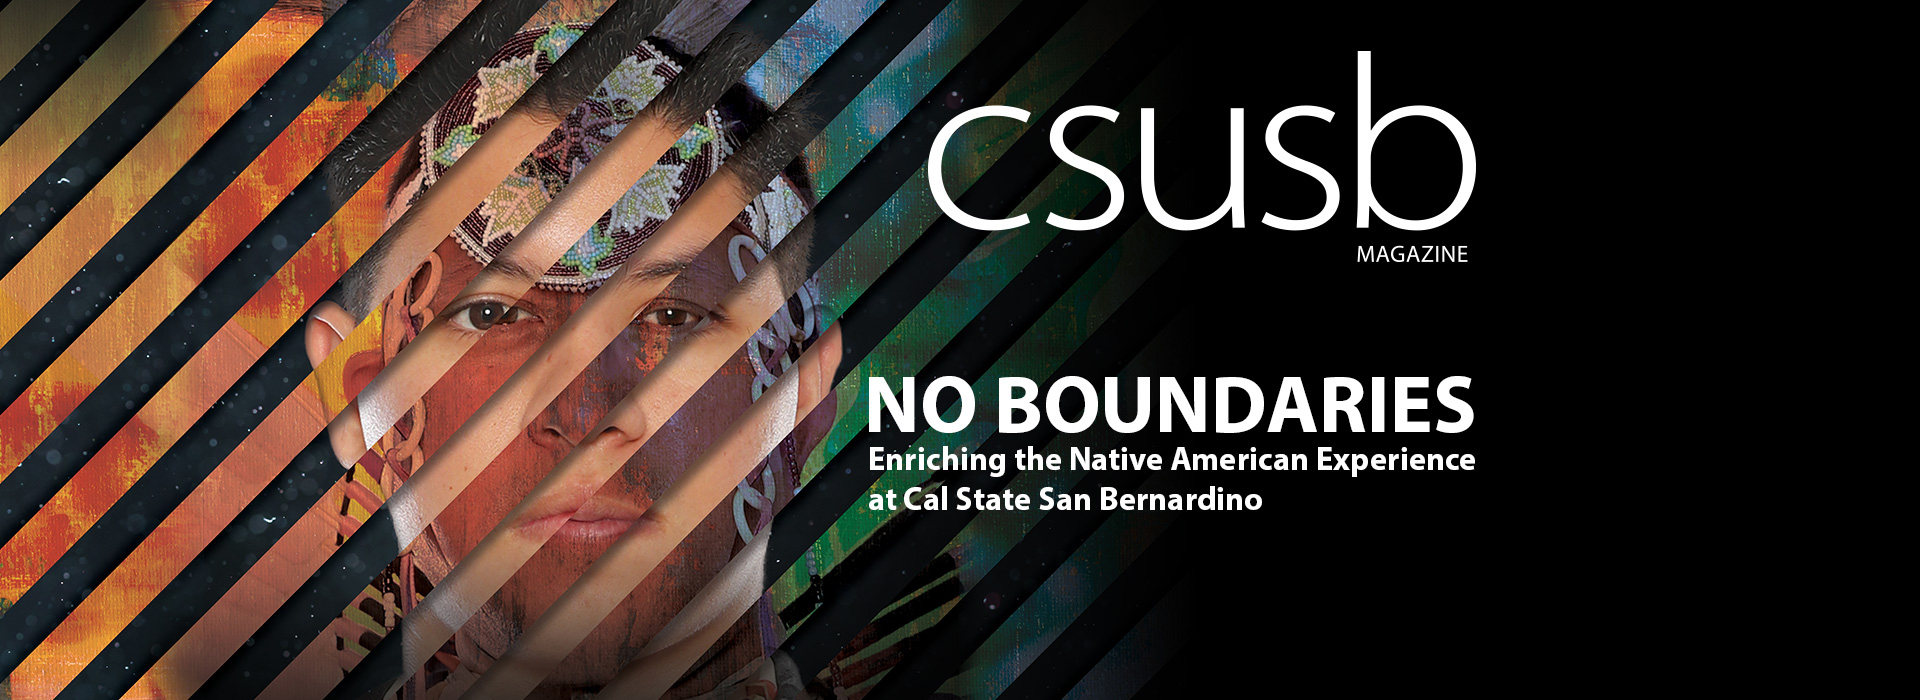 The spring 2019 edition of CSUSB Magazine is now online